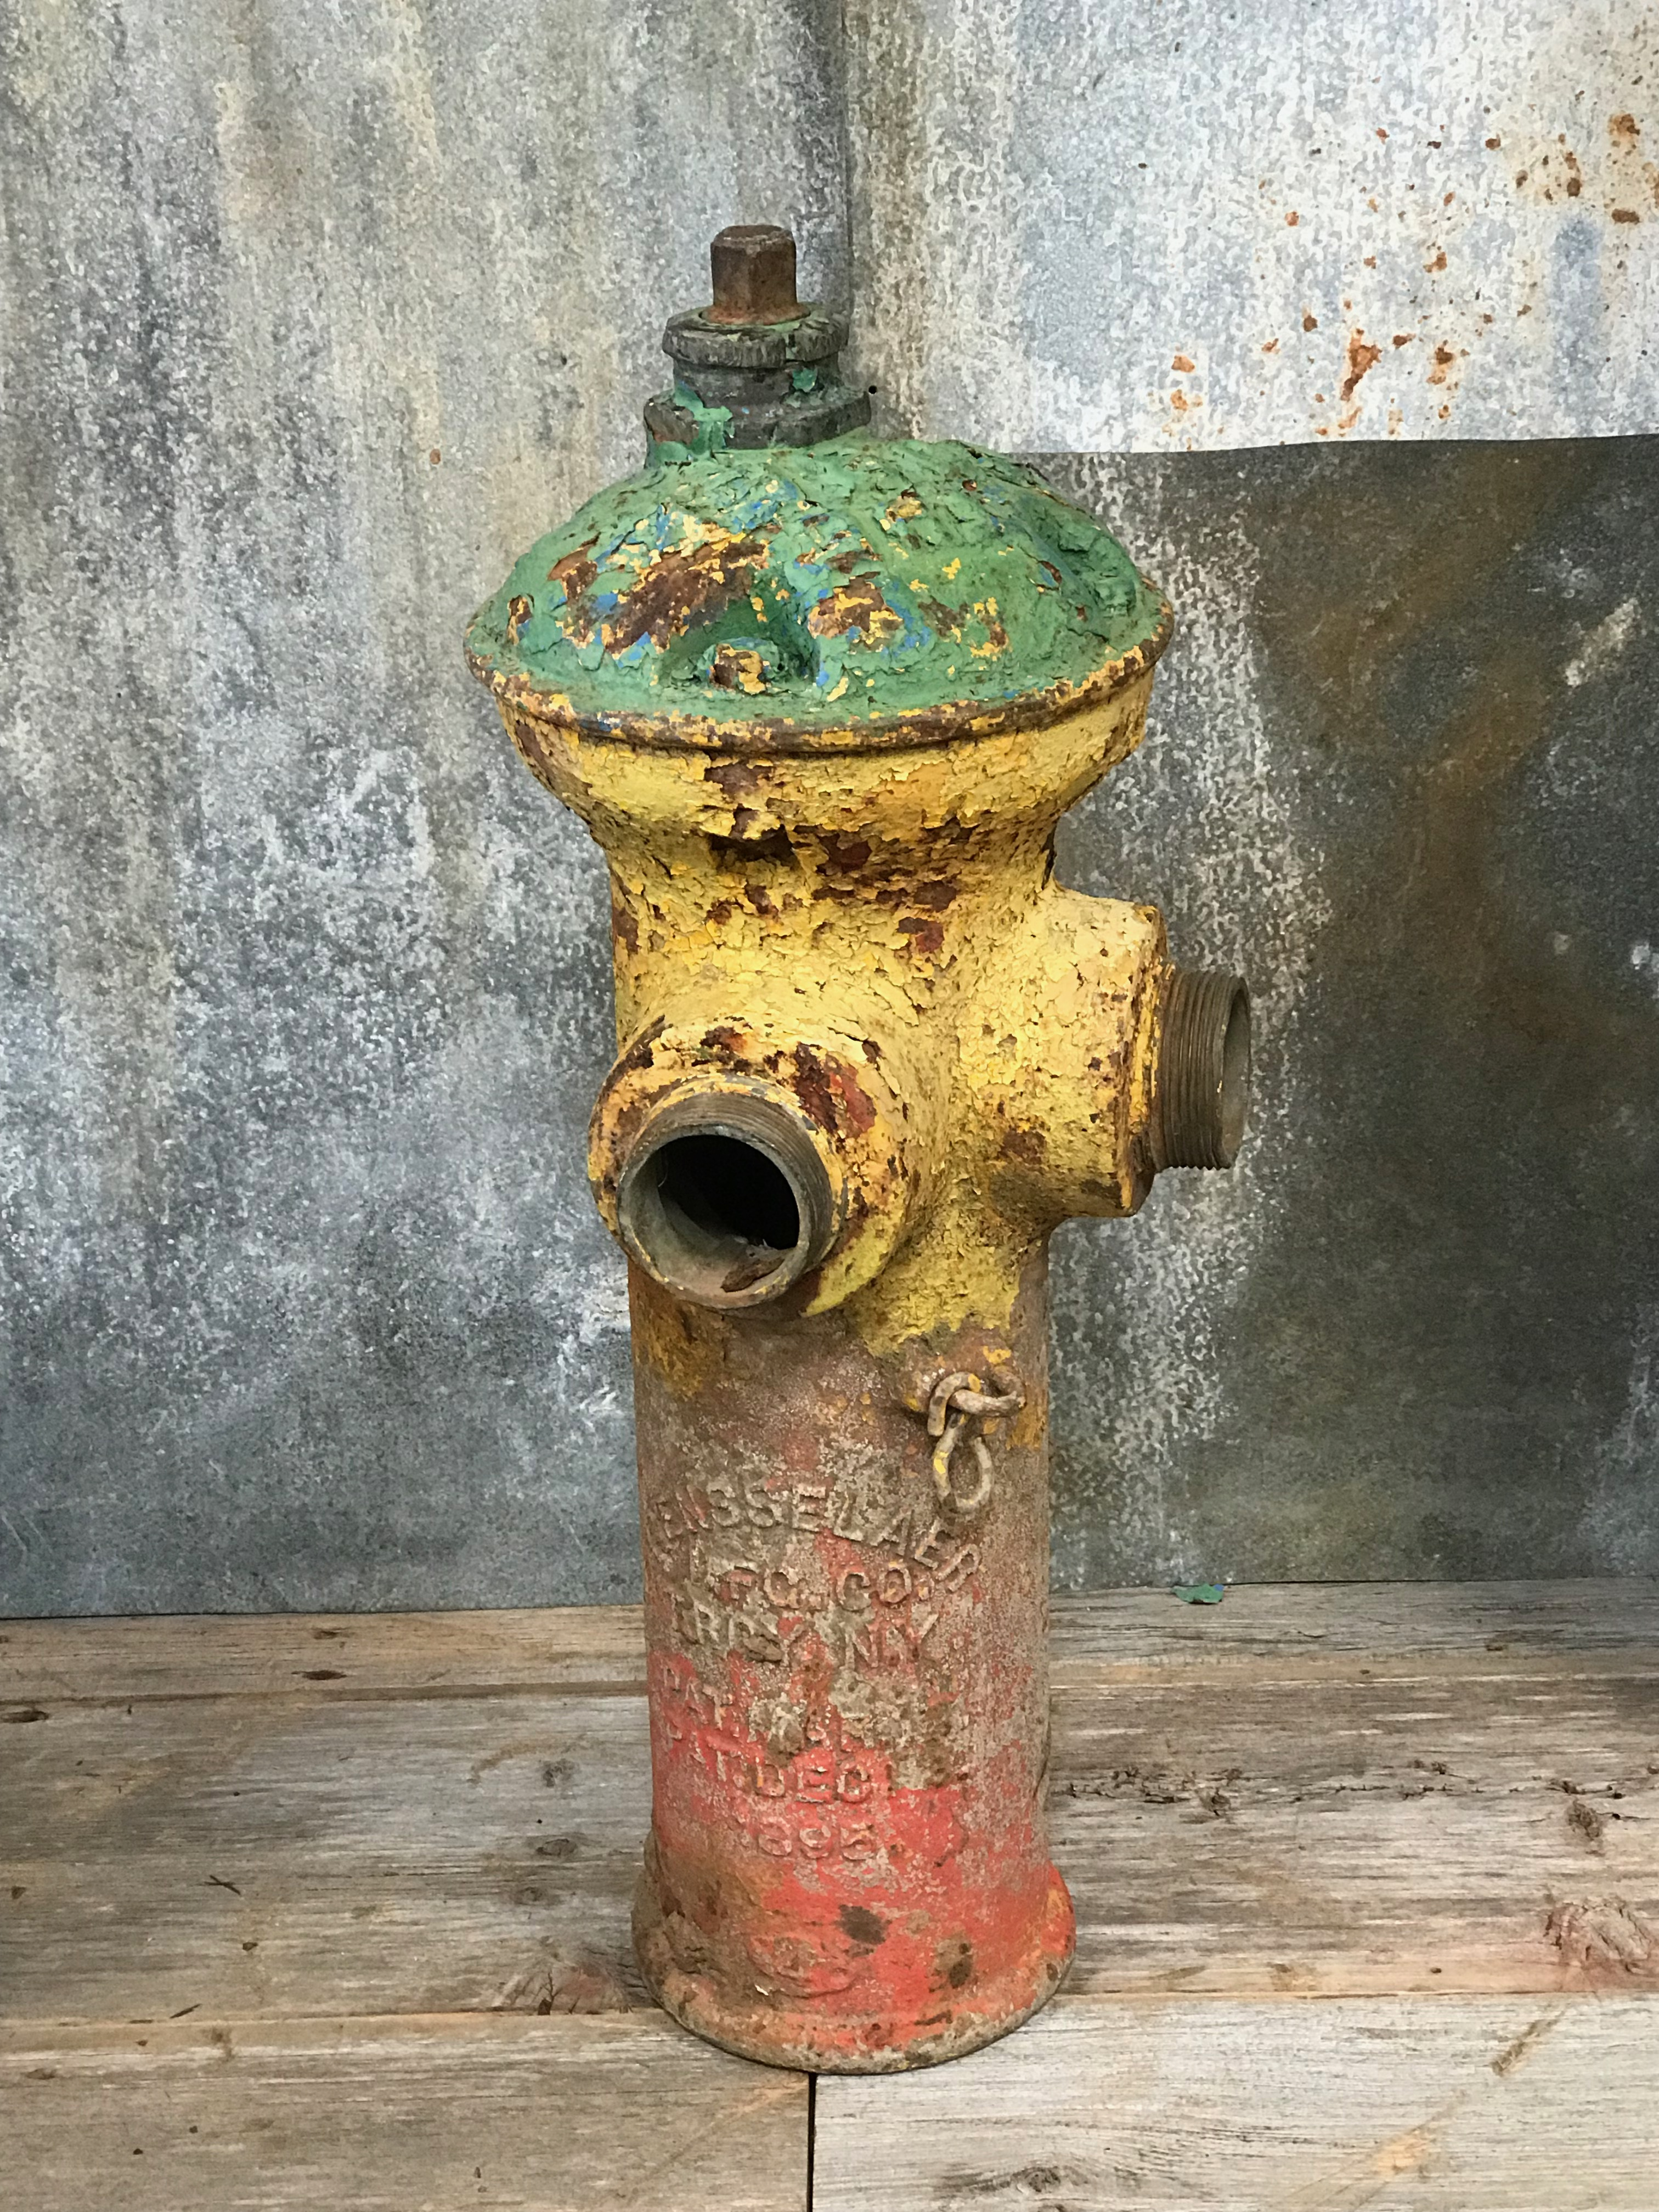 Vintage Fire Hydrant The Crate People